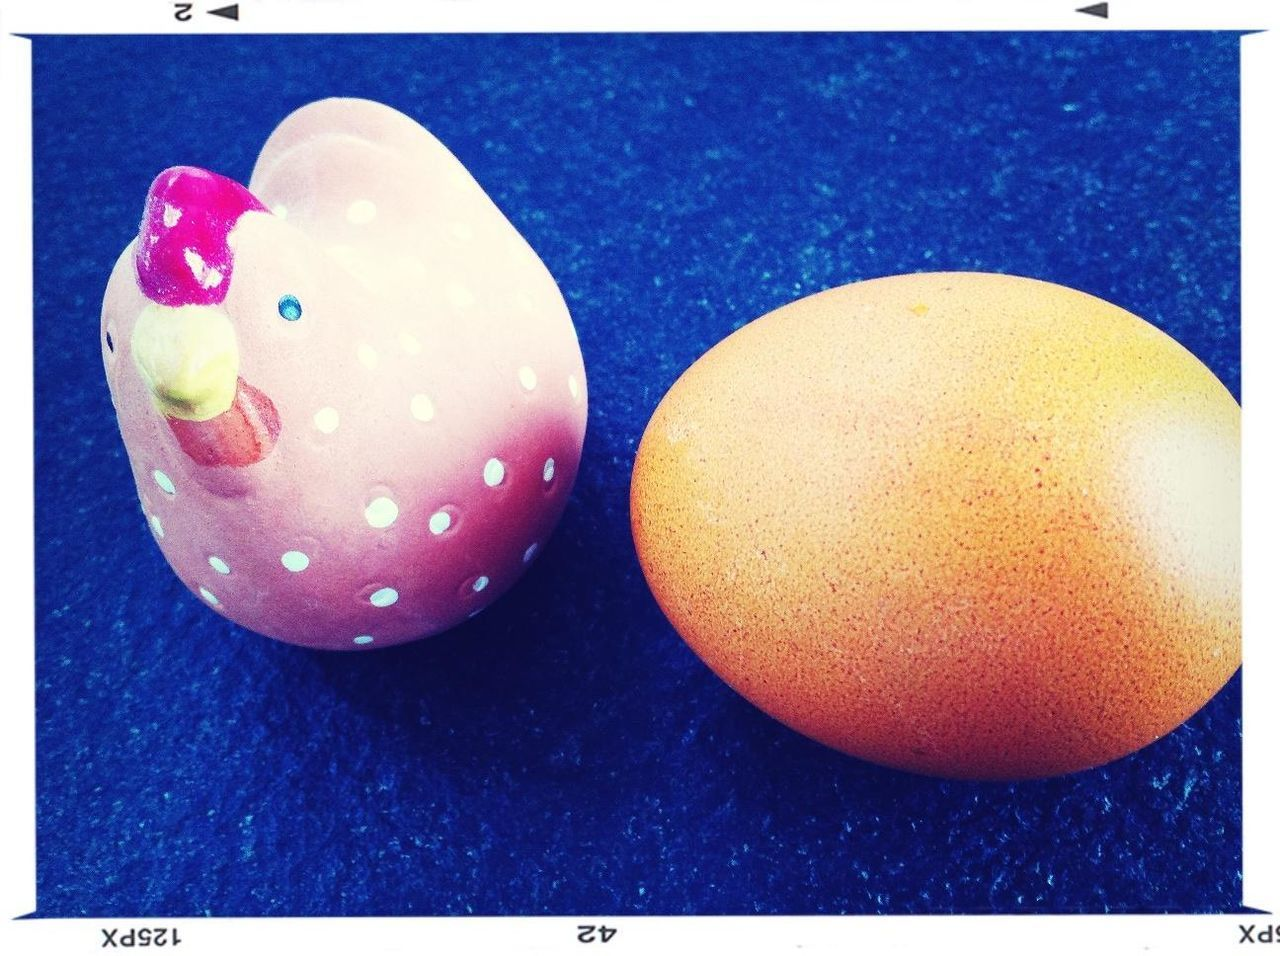 Egg and toy on blue table